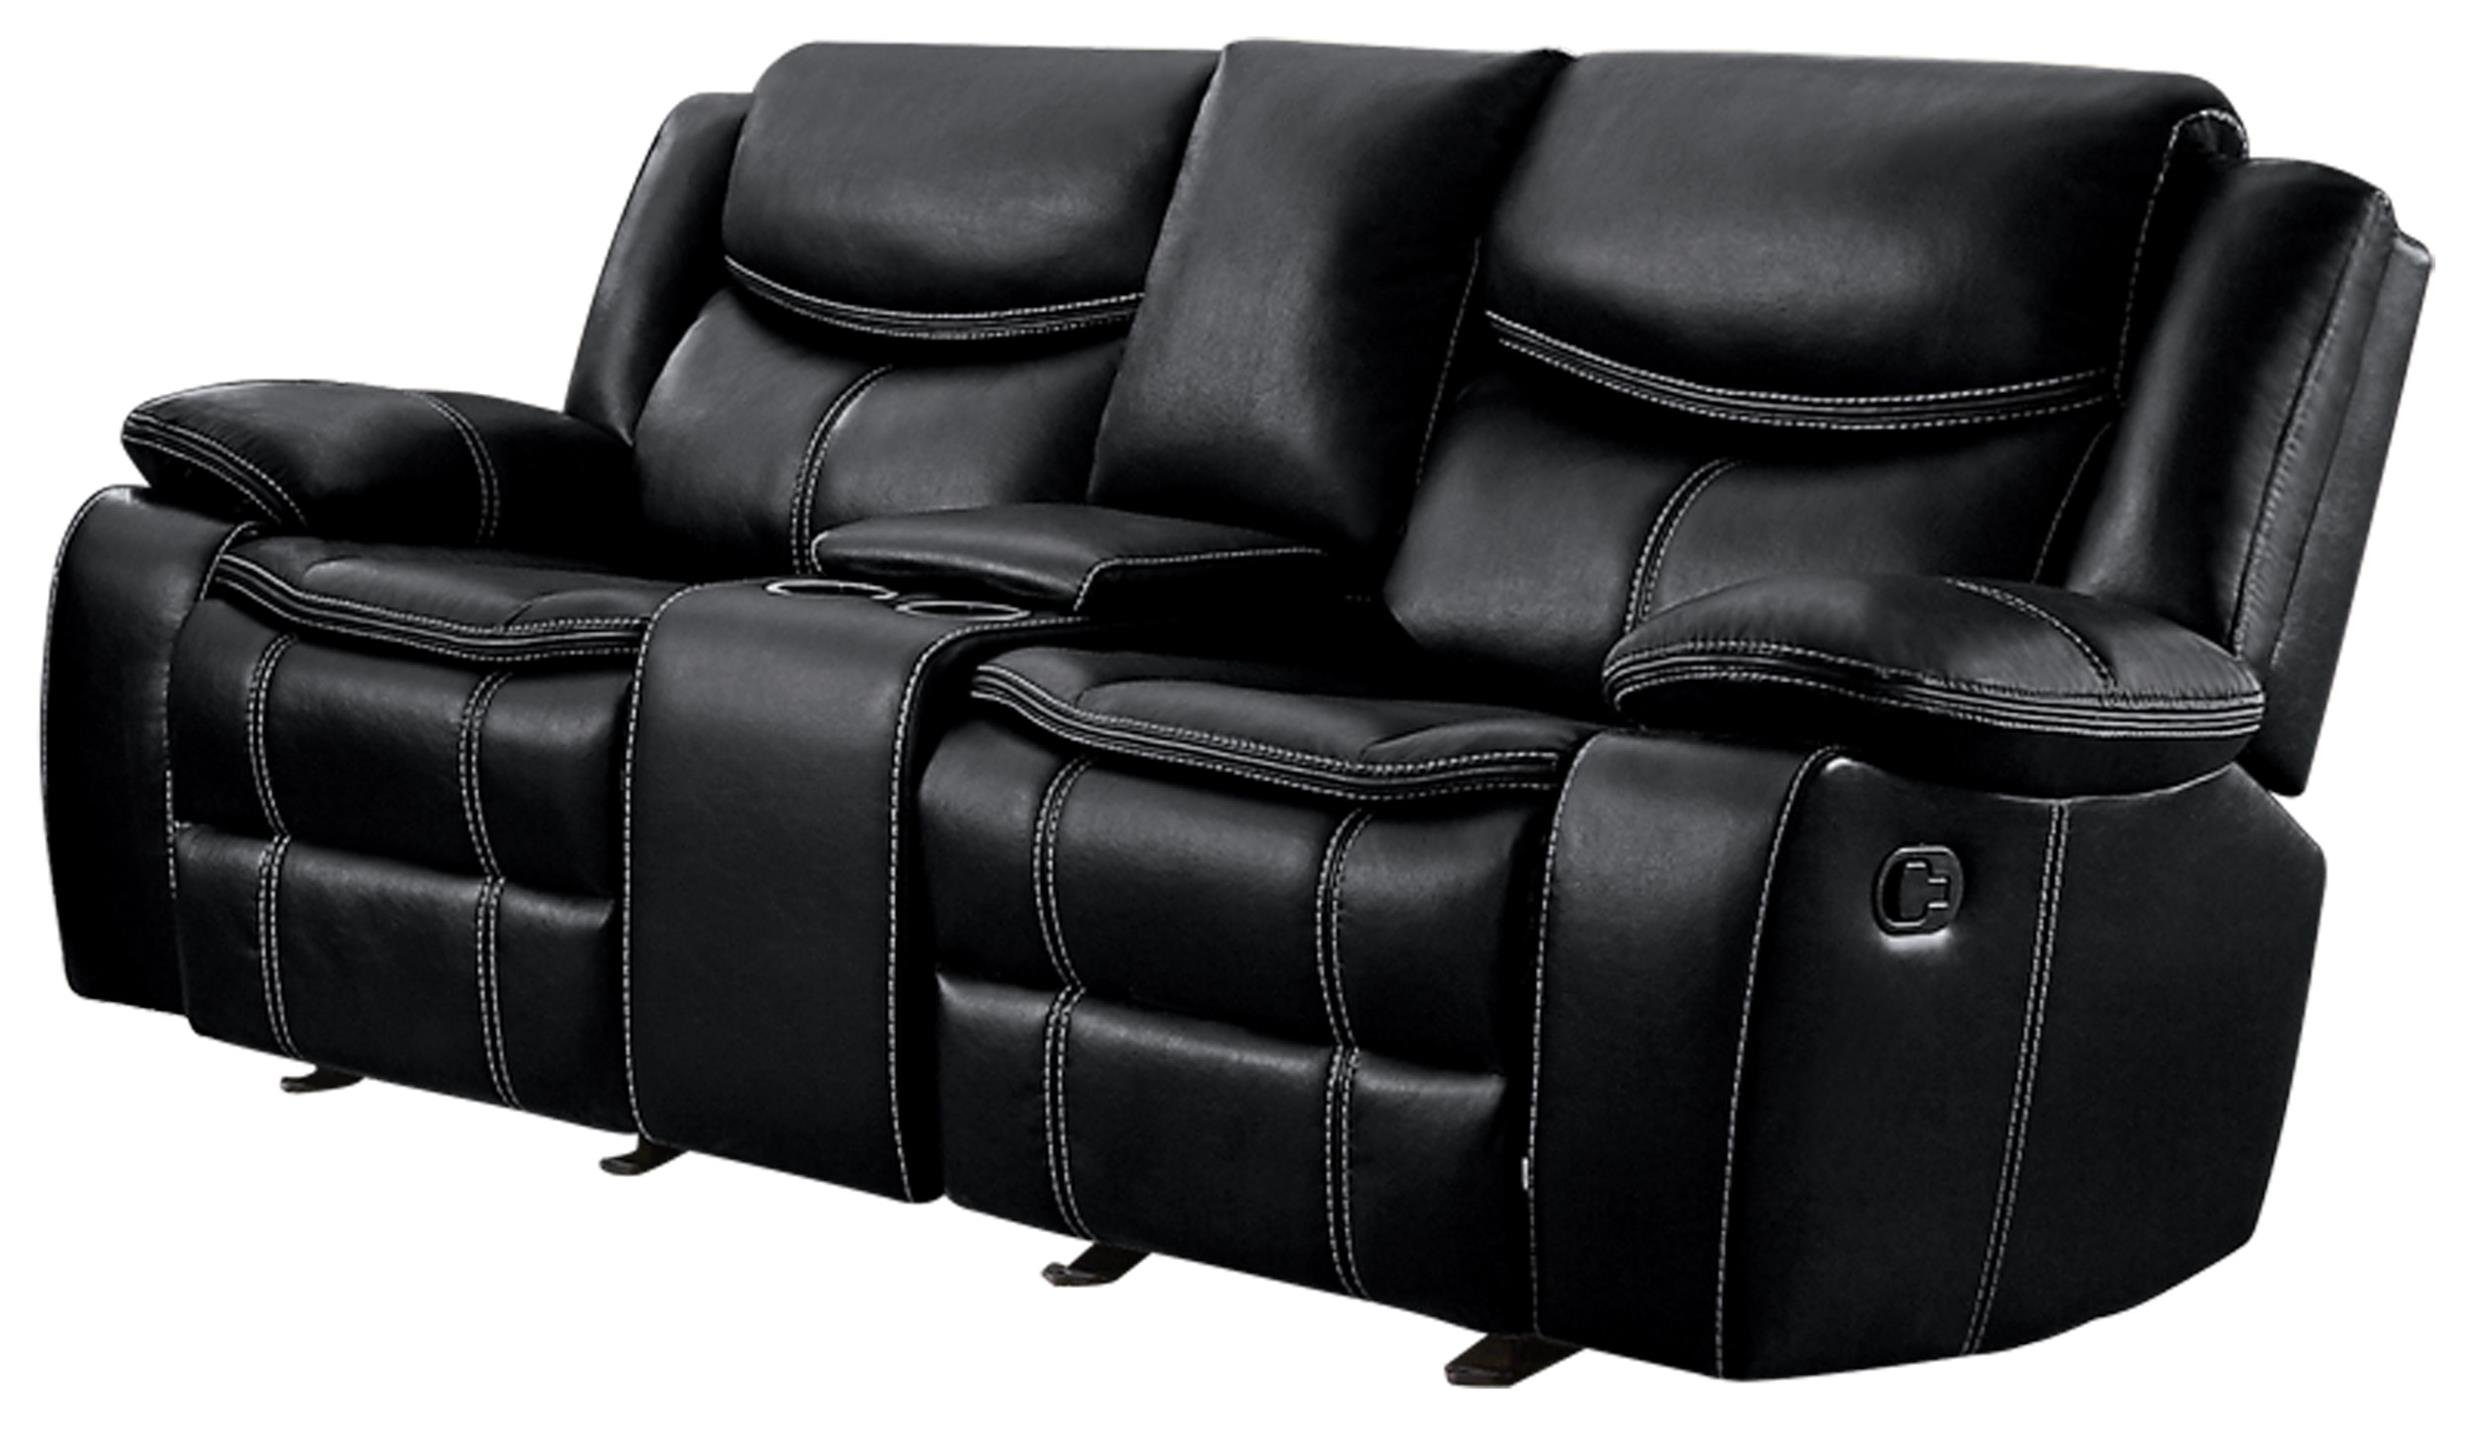 Homelegance Bastrop Double Glider Reclining Loveseat Leather Gel Matched with White Accent Stitching, Black